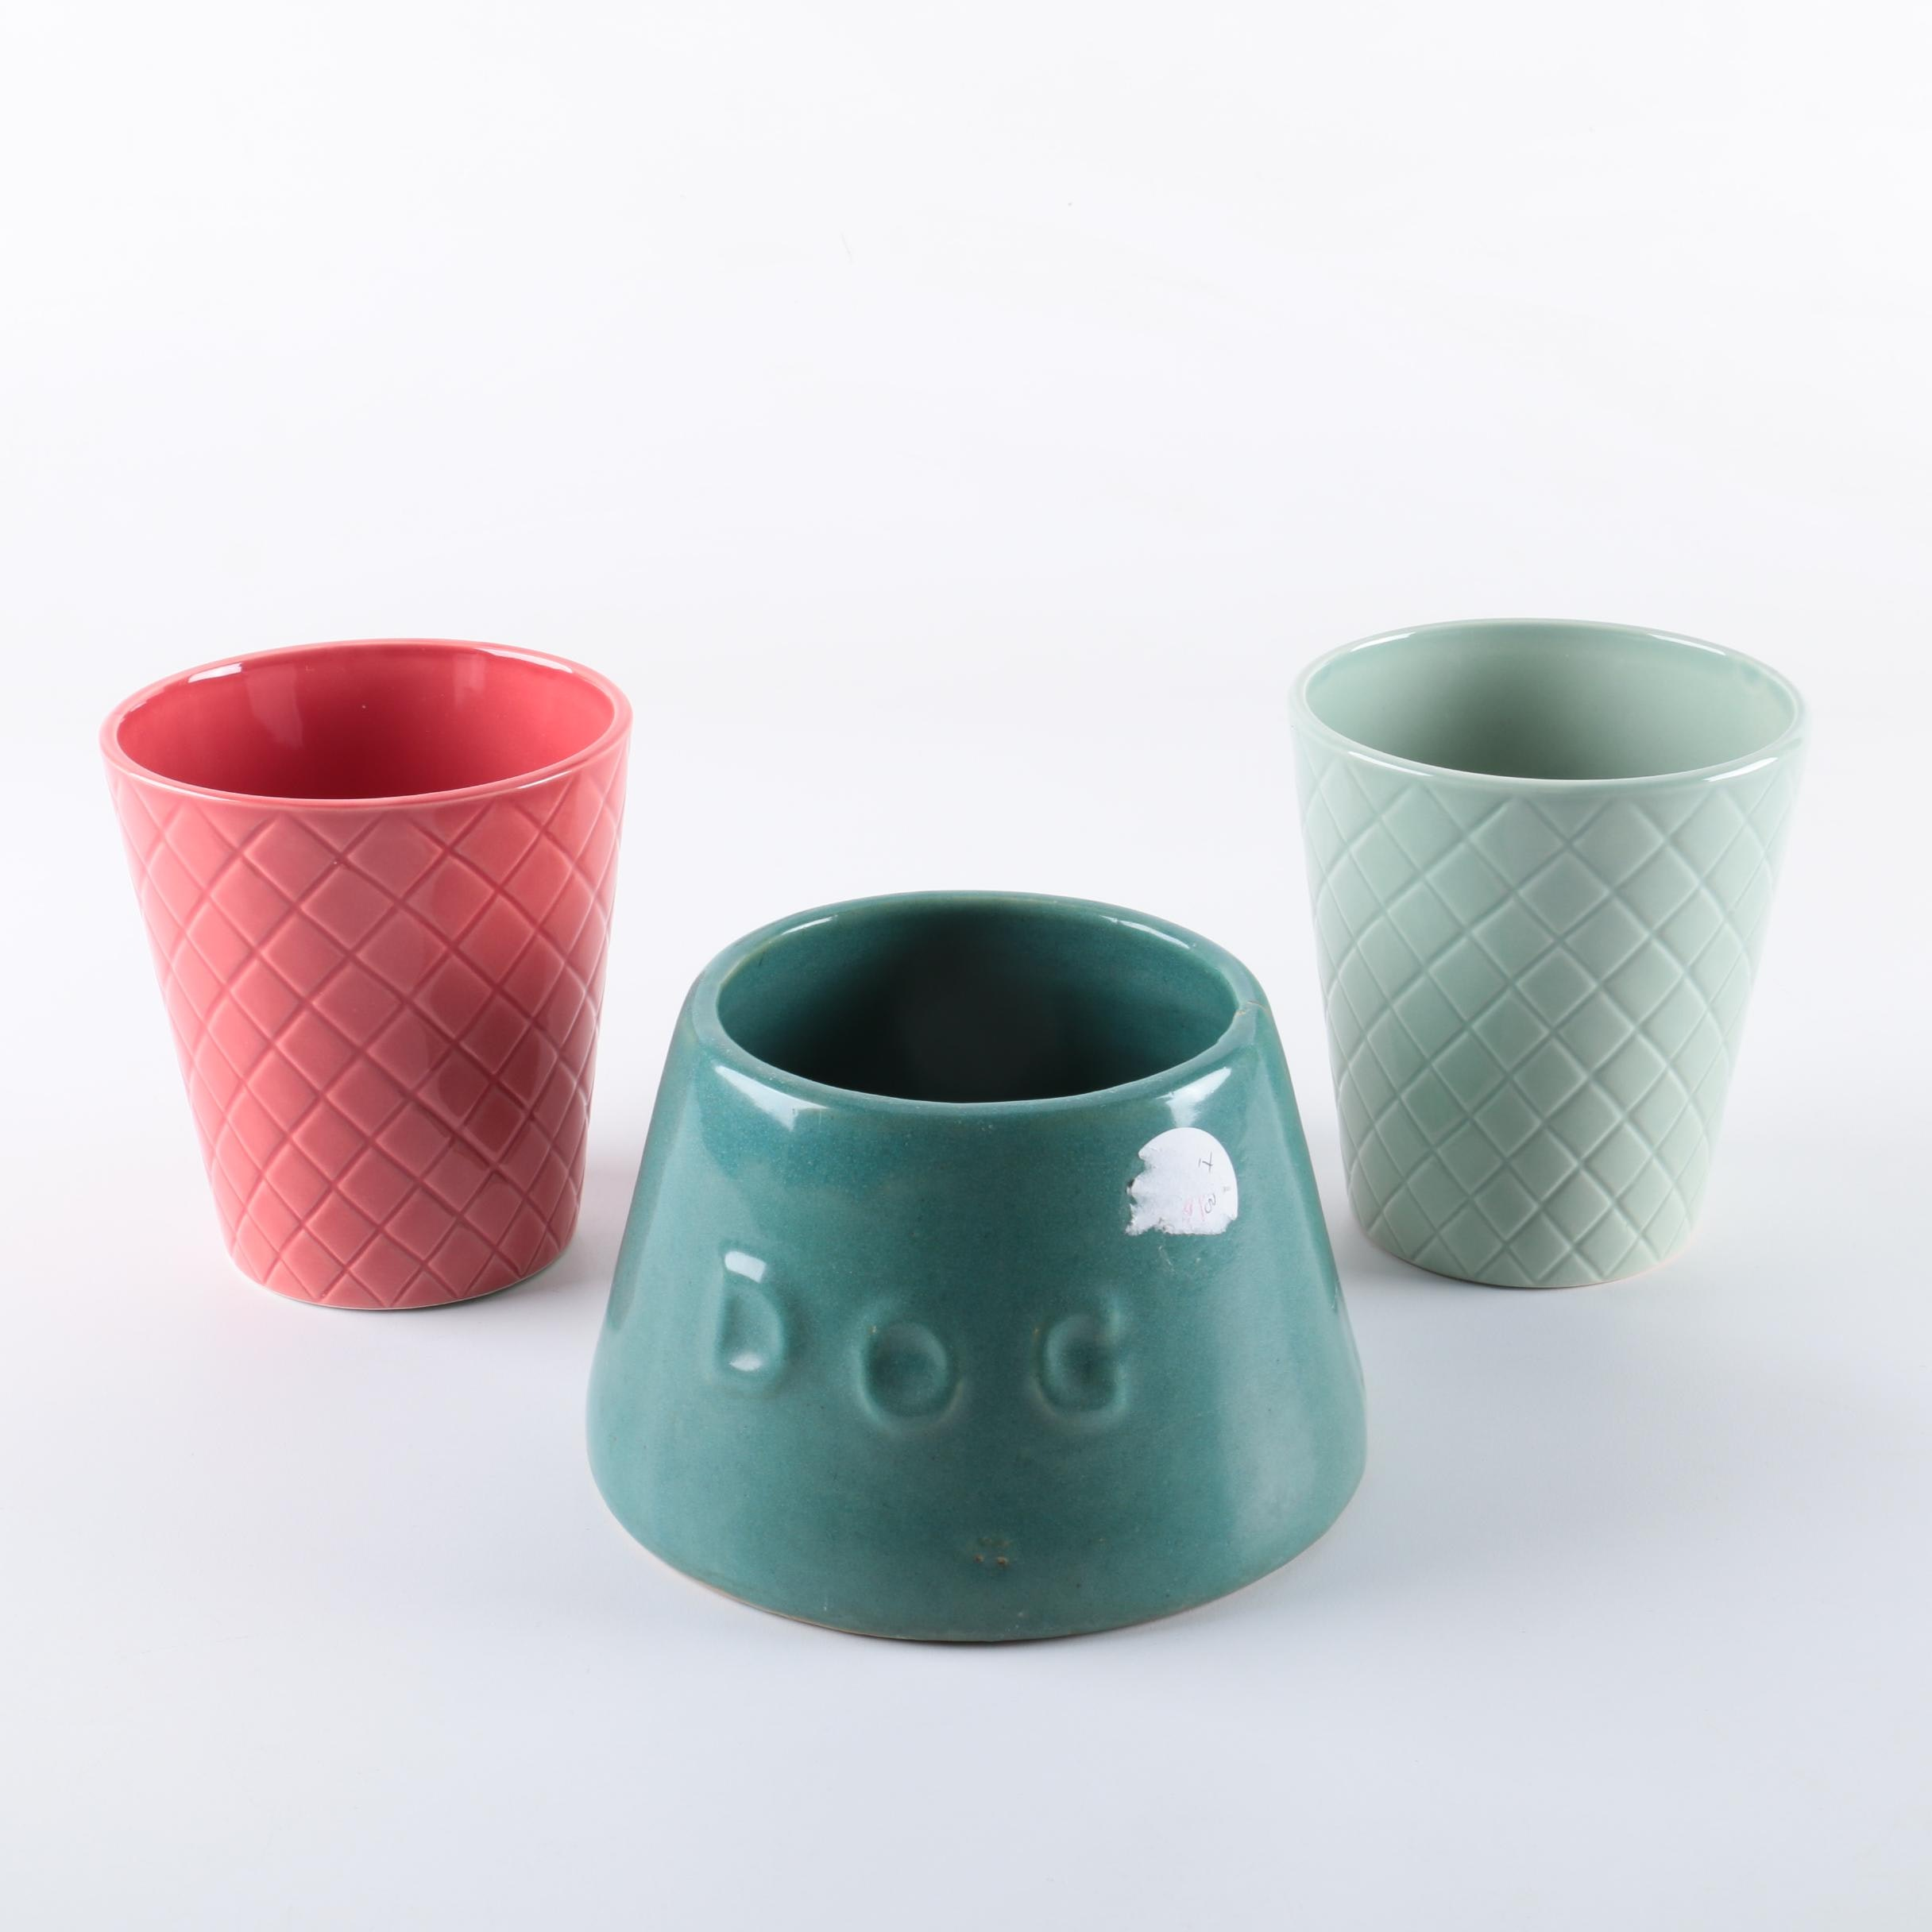 Ceramic Planters and Dog Bowl